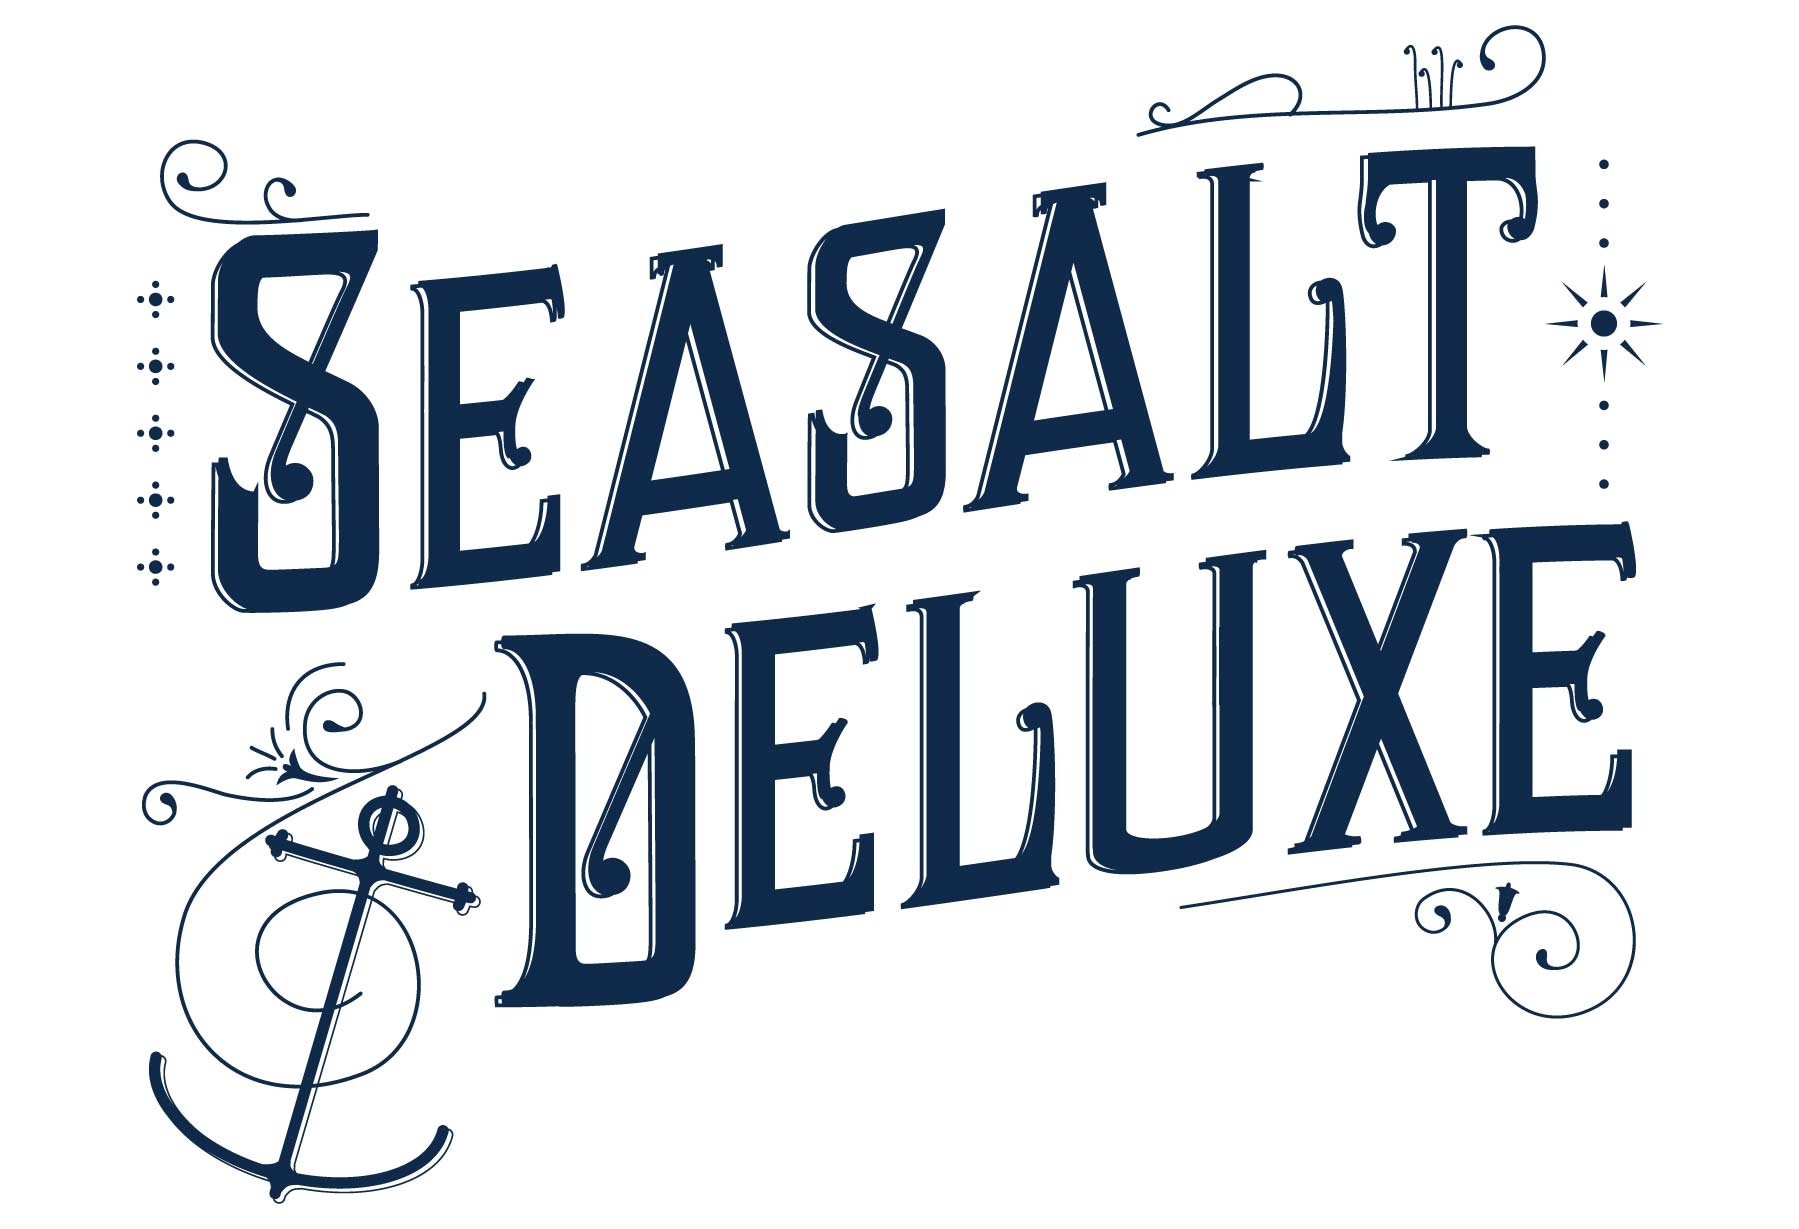 Custom logotype for Seasalt's luxury range, by Elly Jahnz